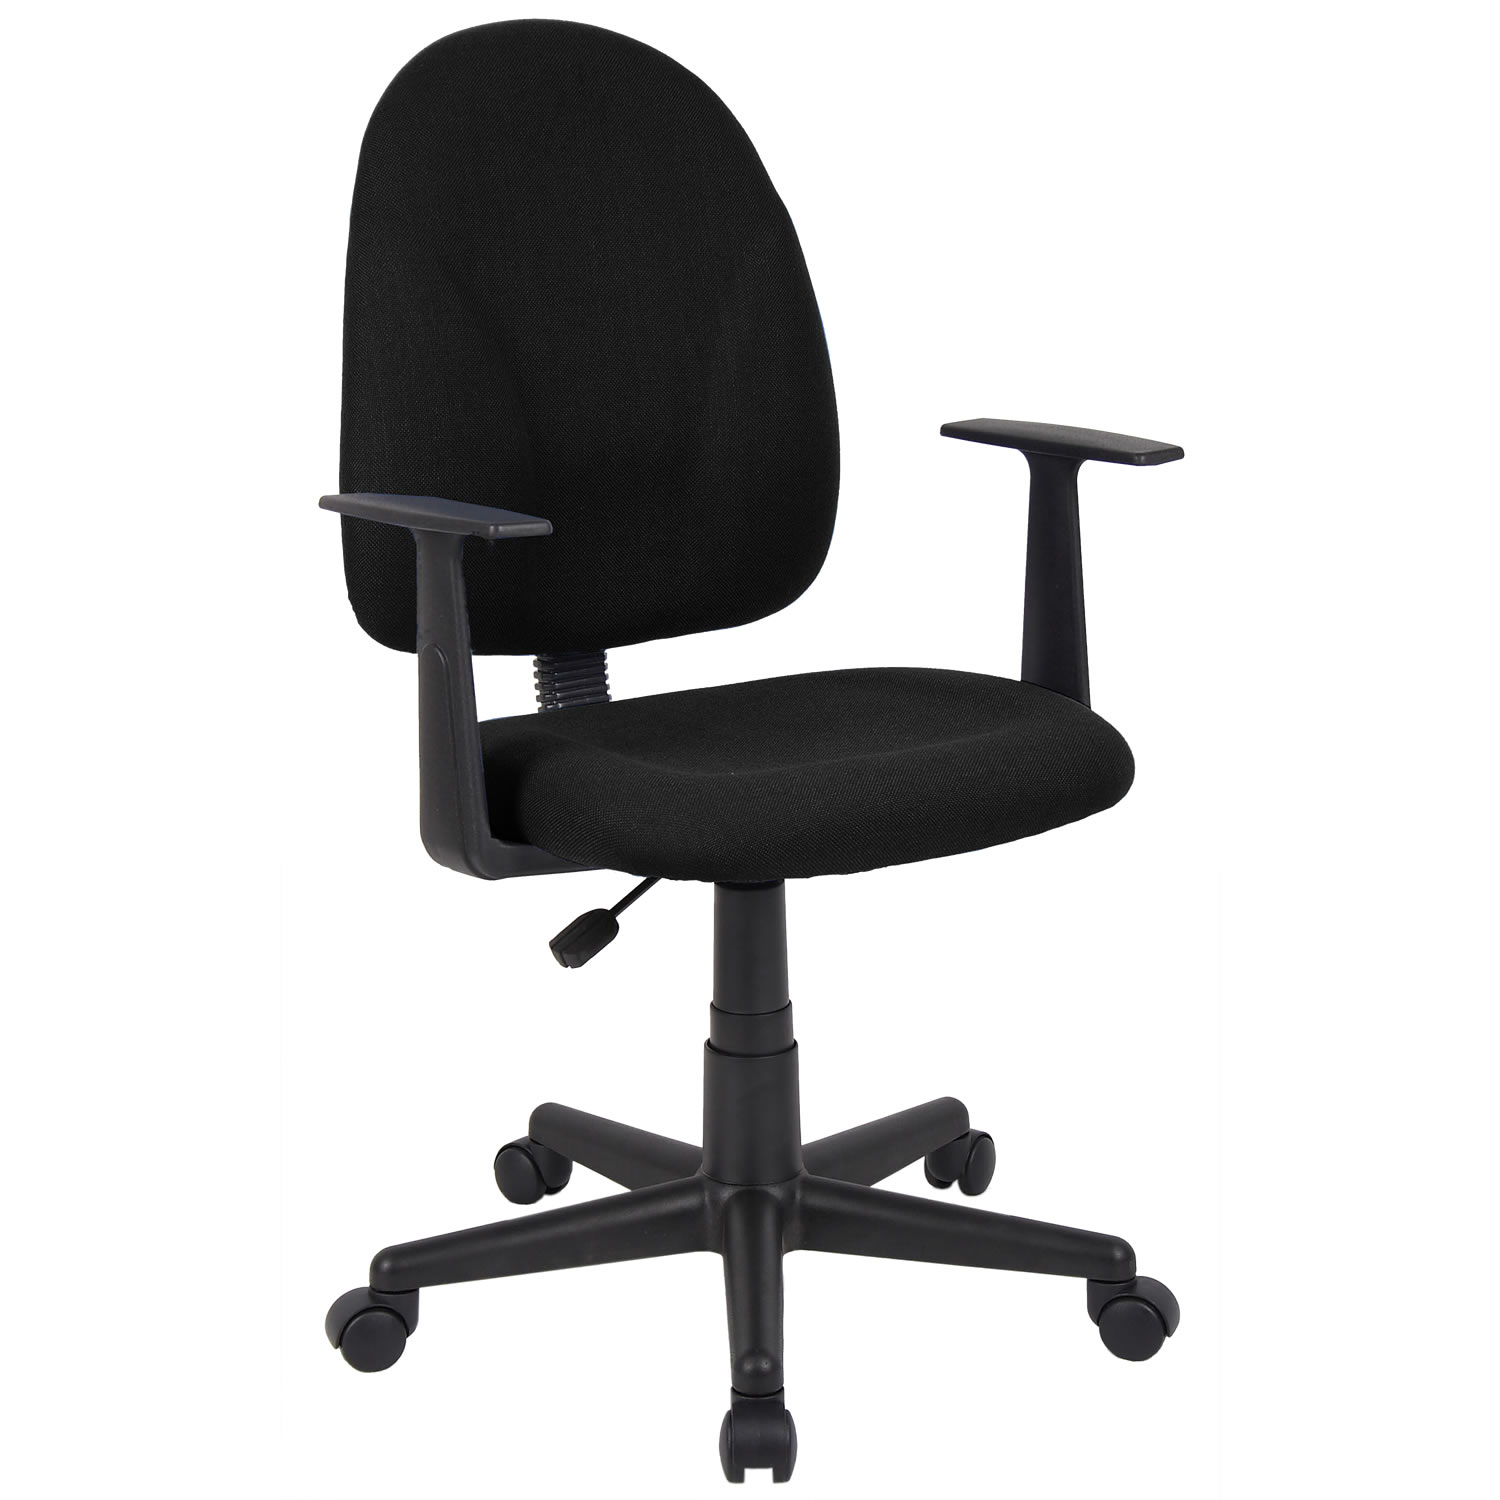 Office Furniture & Equipment